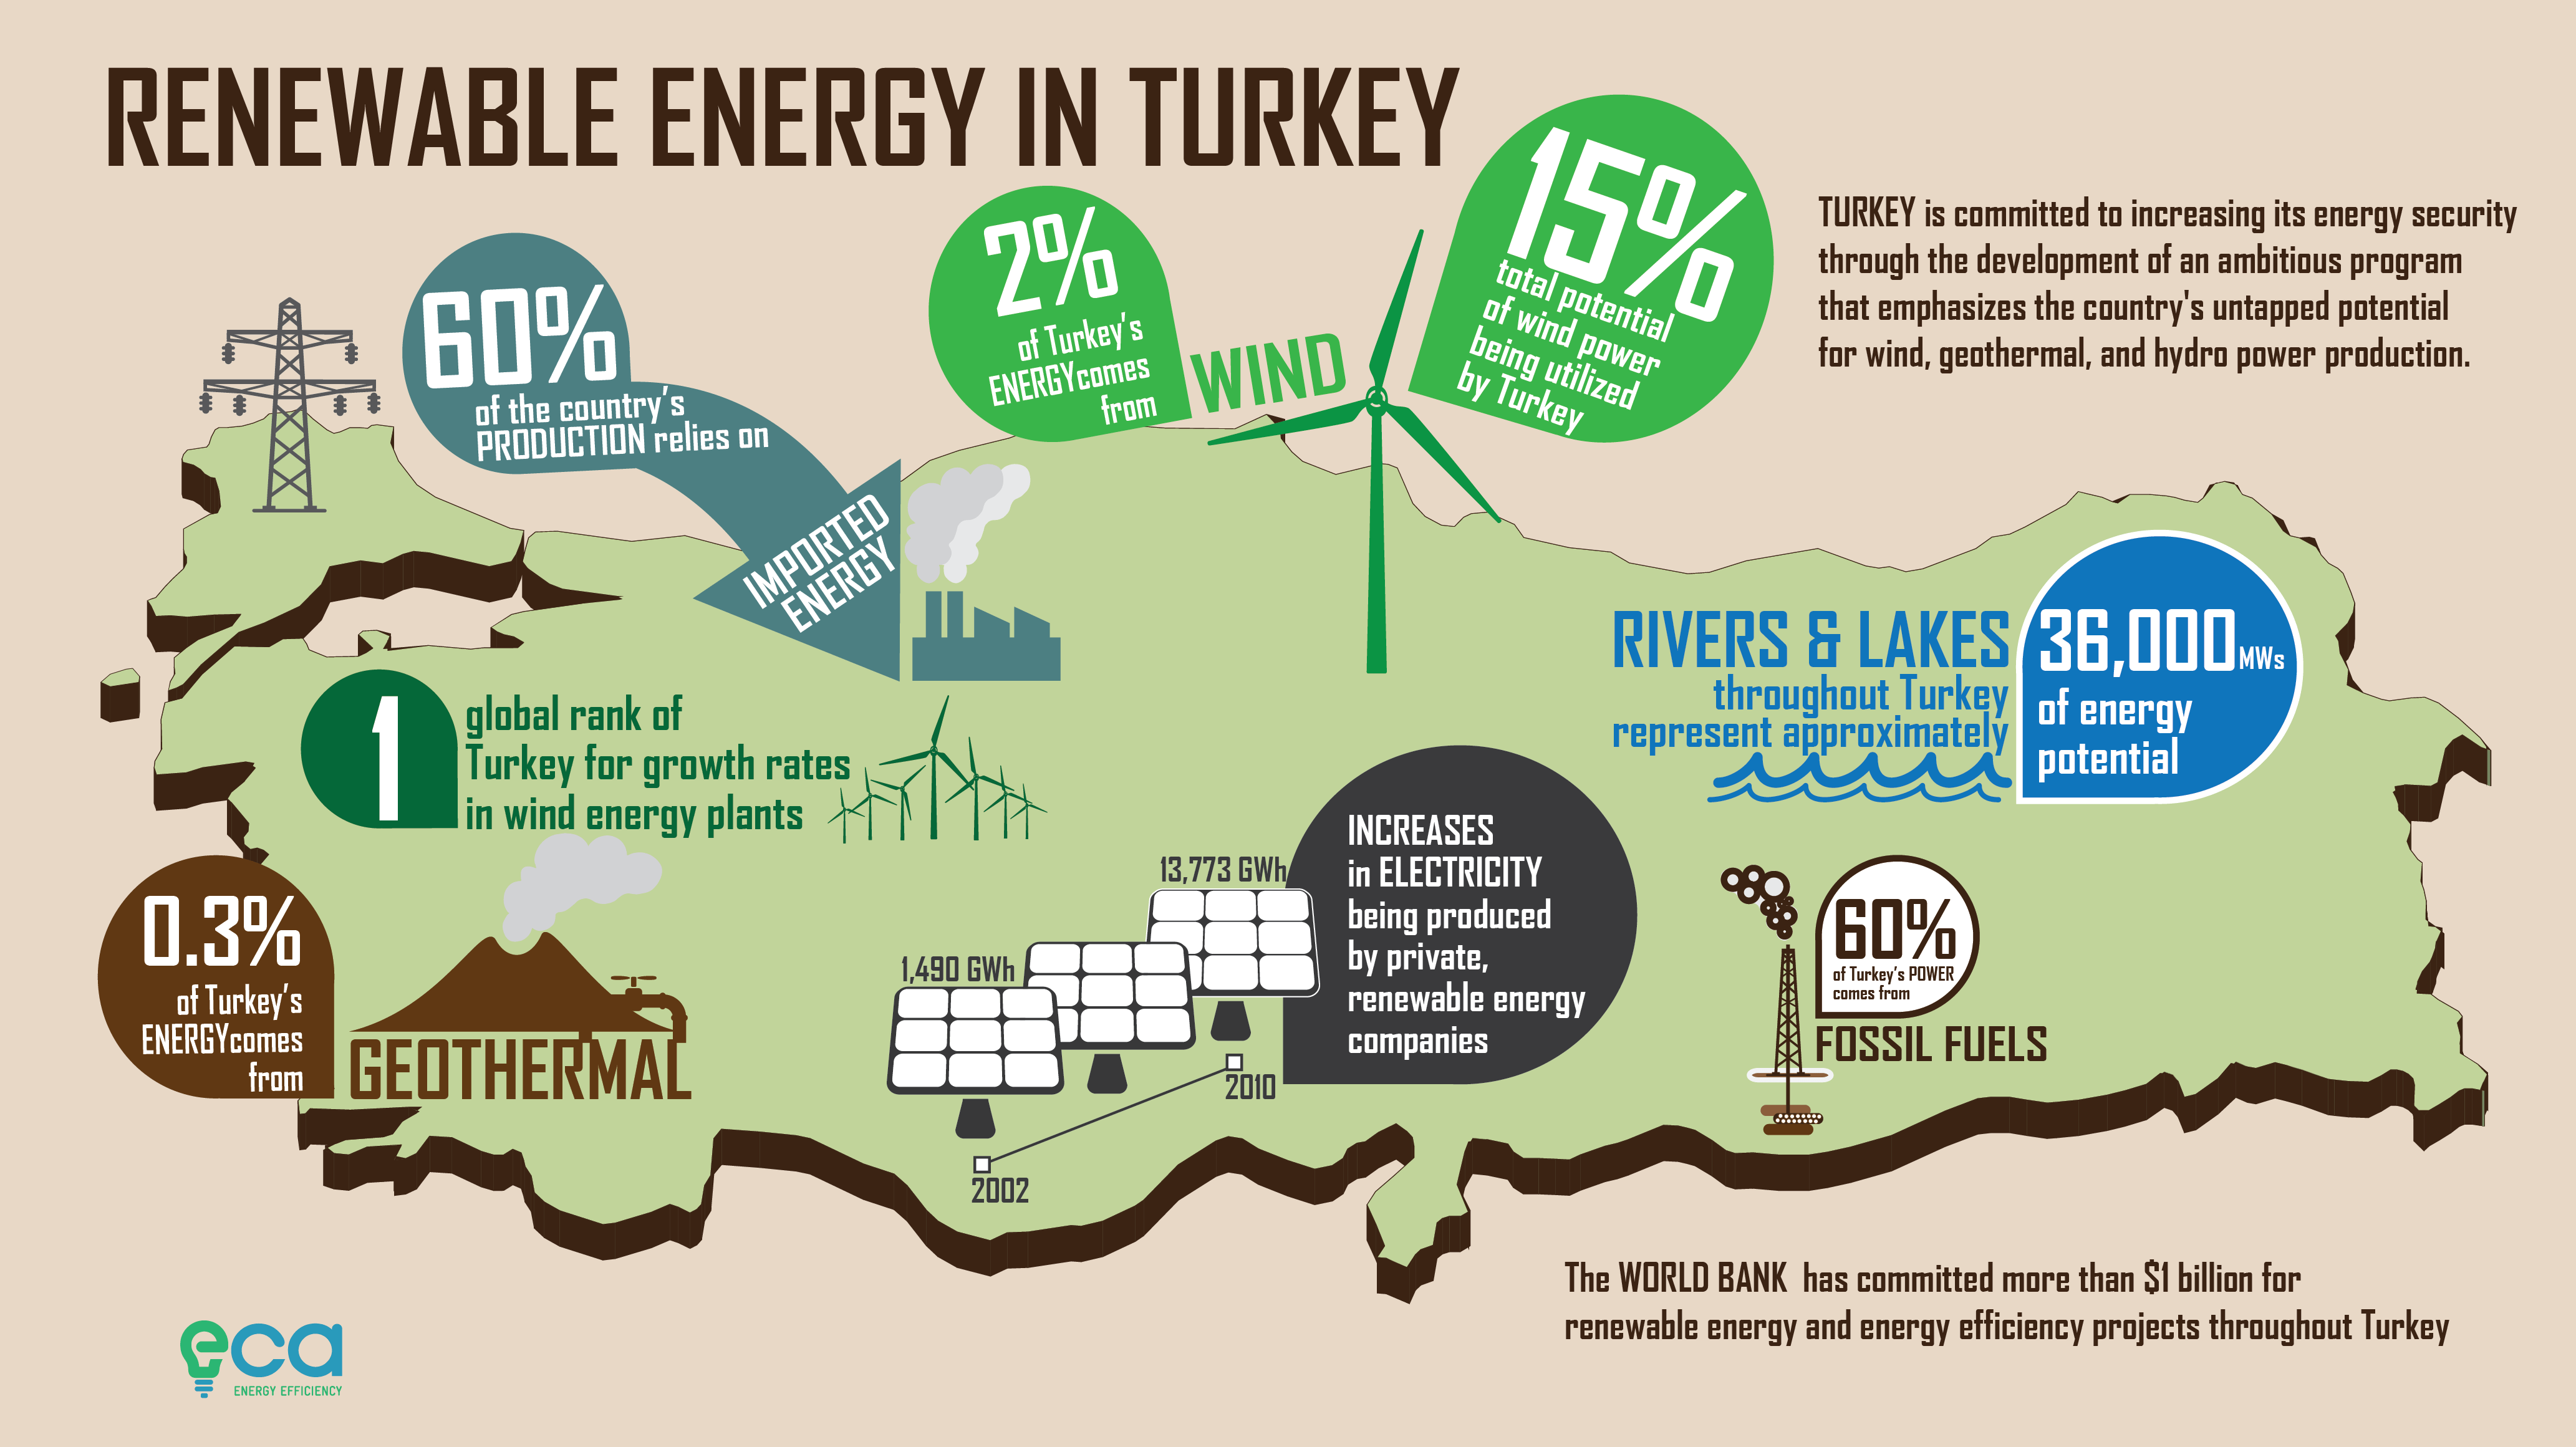 RENEWABLE ENERGY DEVELOPMENT OF TURKEY